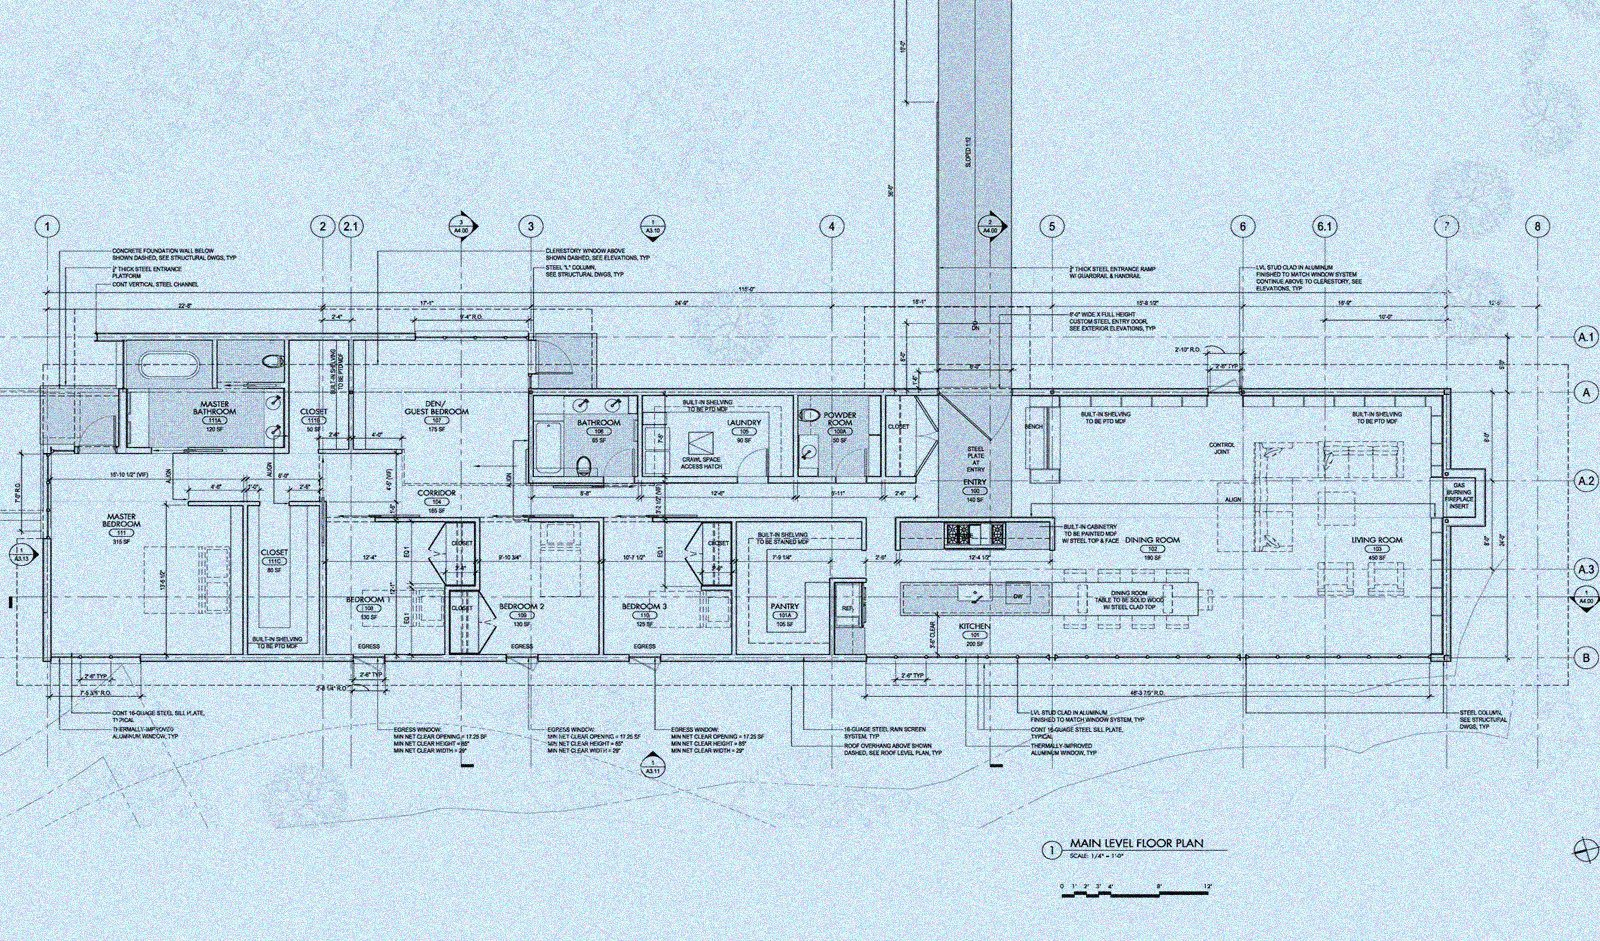 Maxon Panel Heater Wiring Diagram Doing The New Way Mcb 30 Building House Week 16 Dwell Rh Com 3 Phase Electric Water